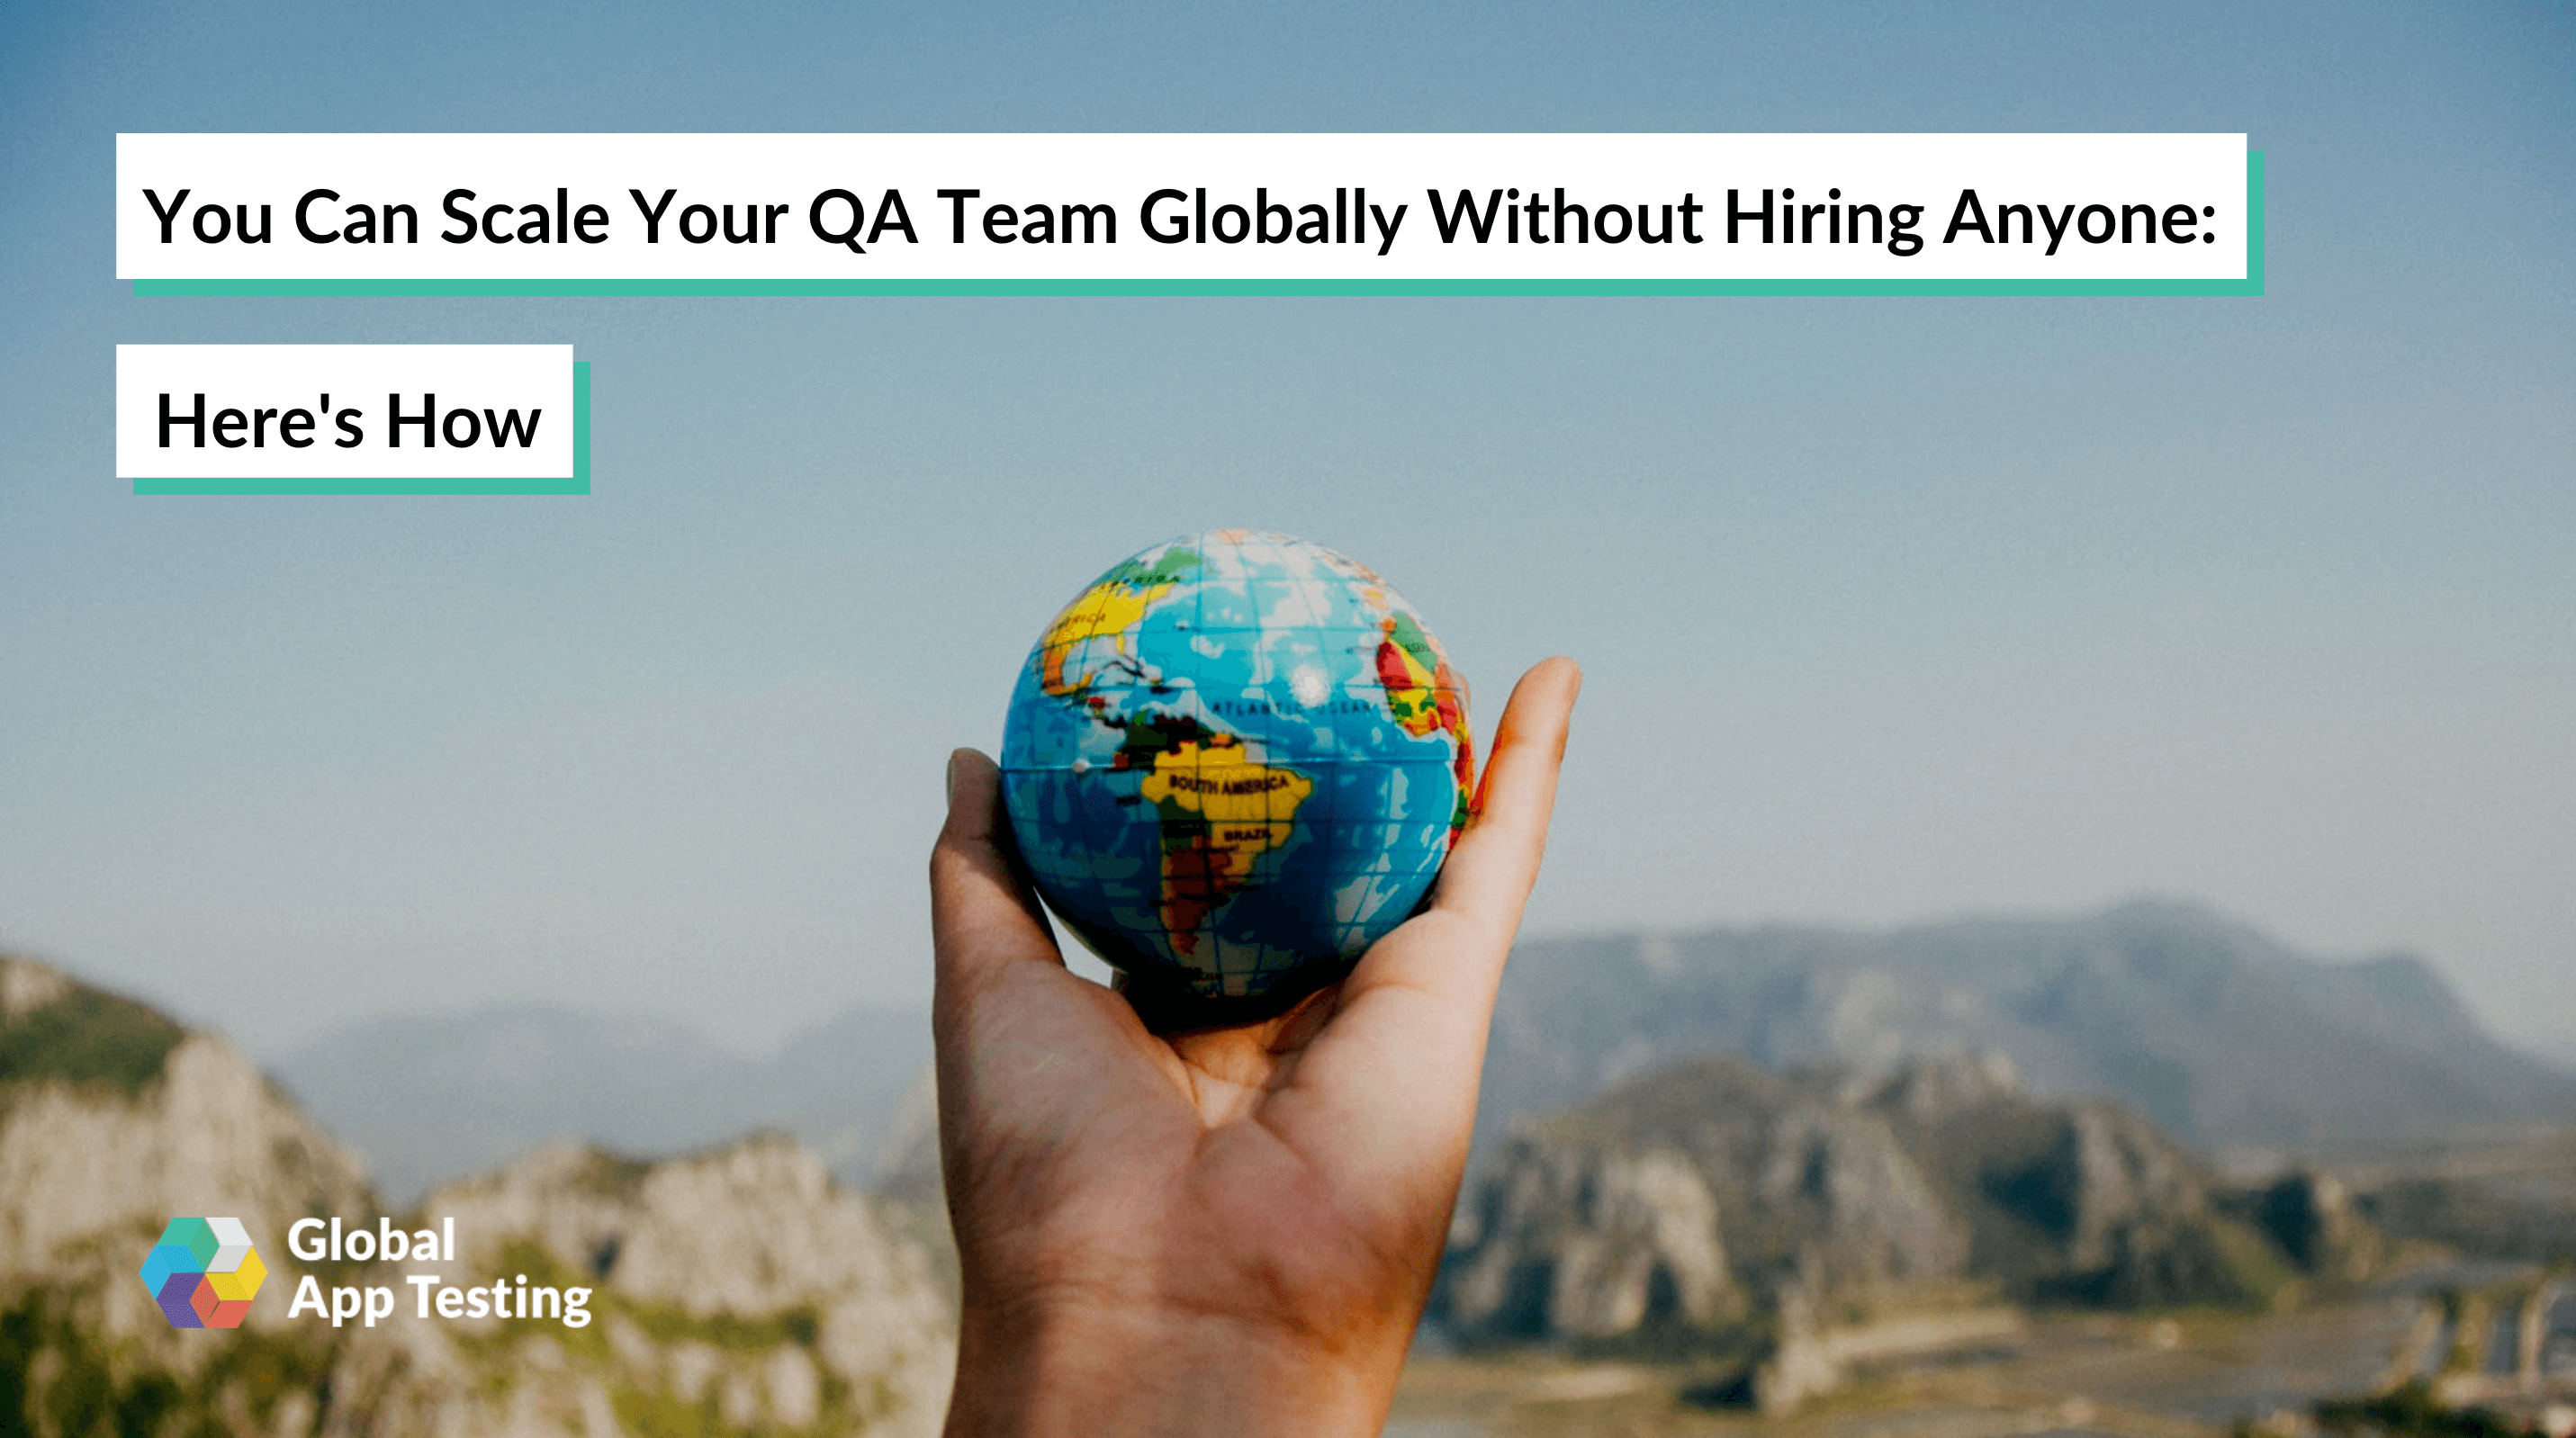 You Can Scale Your QA Team Globally Without Hiring Anyone: Here's How